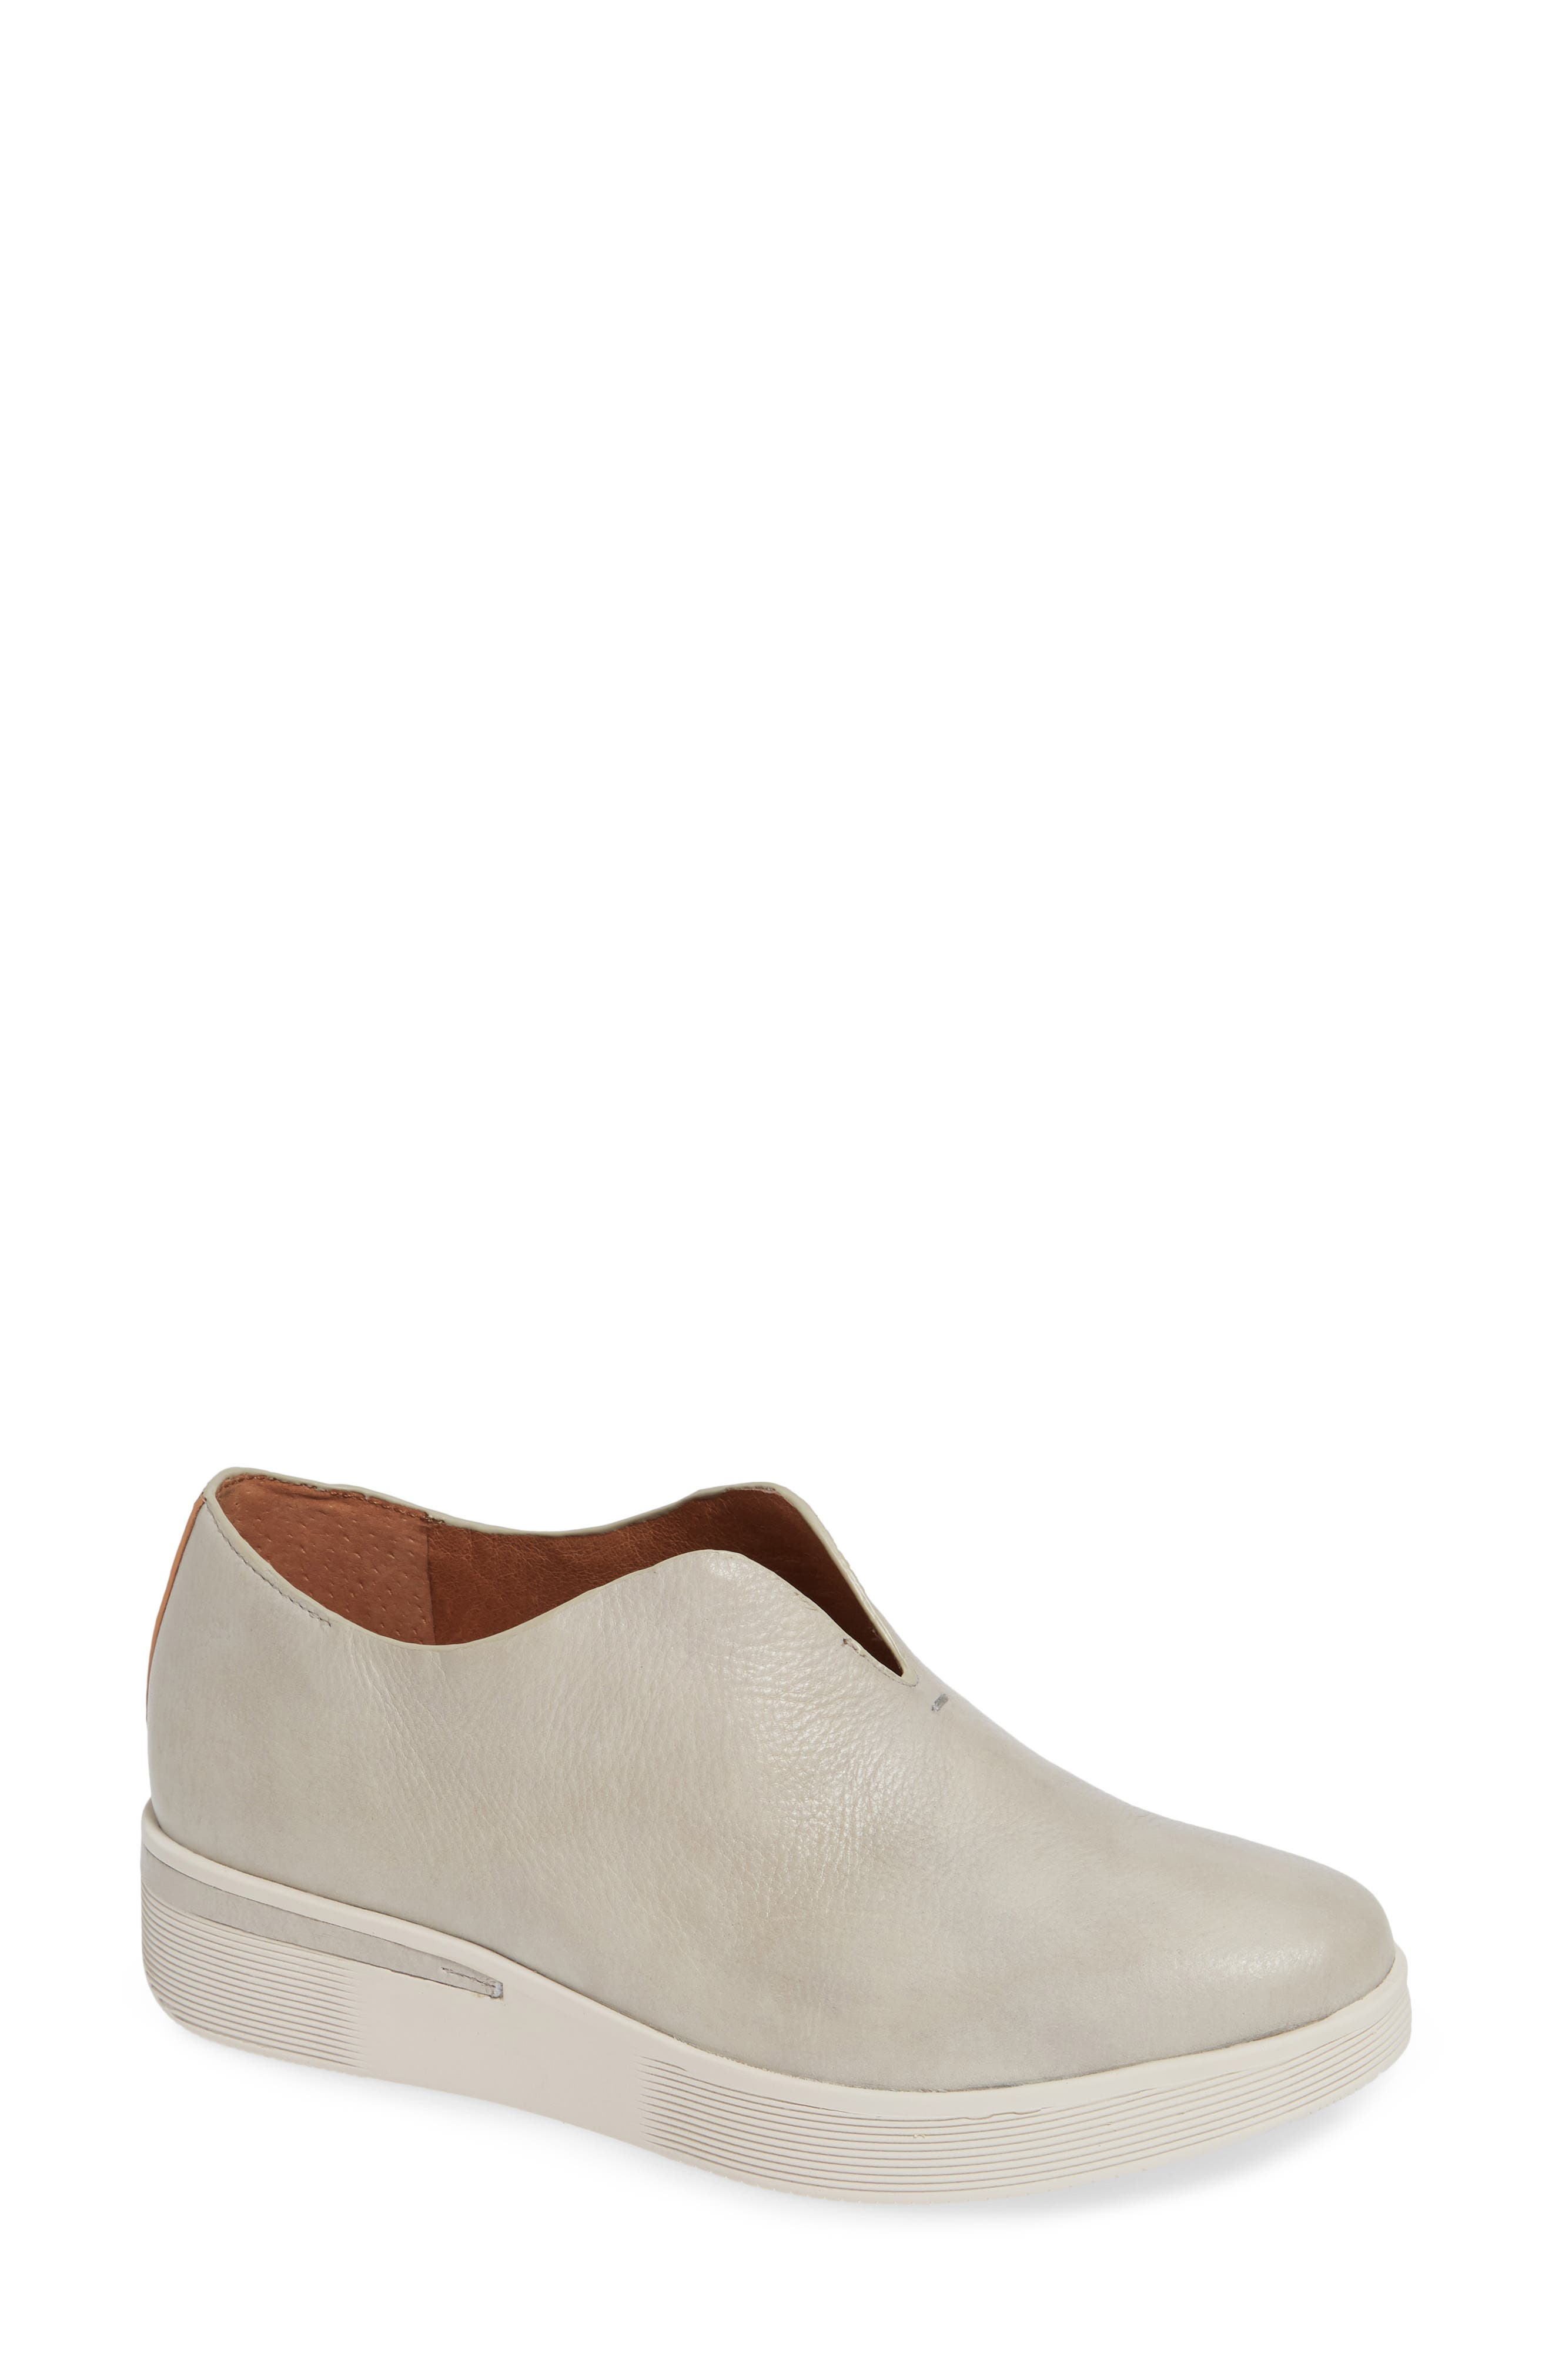 GENTLE SOULS BY KENNETH COLE, Hanna Slip-On Sneaker, Main thumbnail 1, color, LIGHT GREY LEATHER